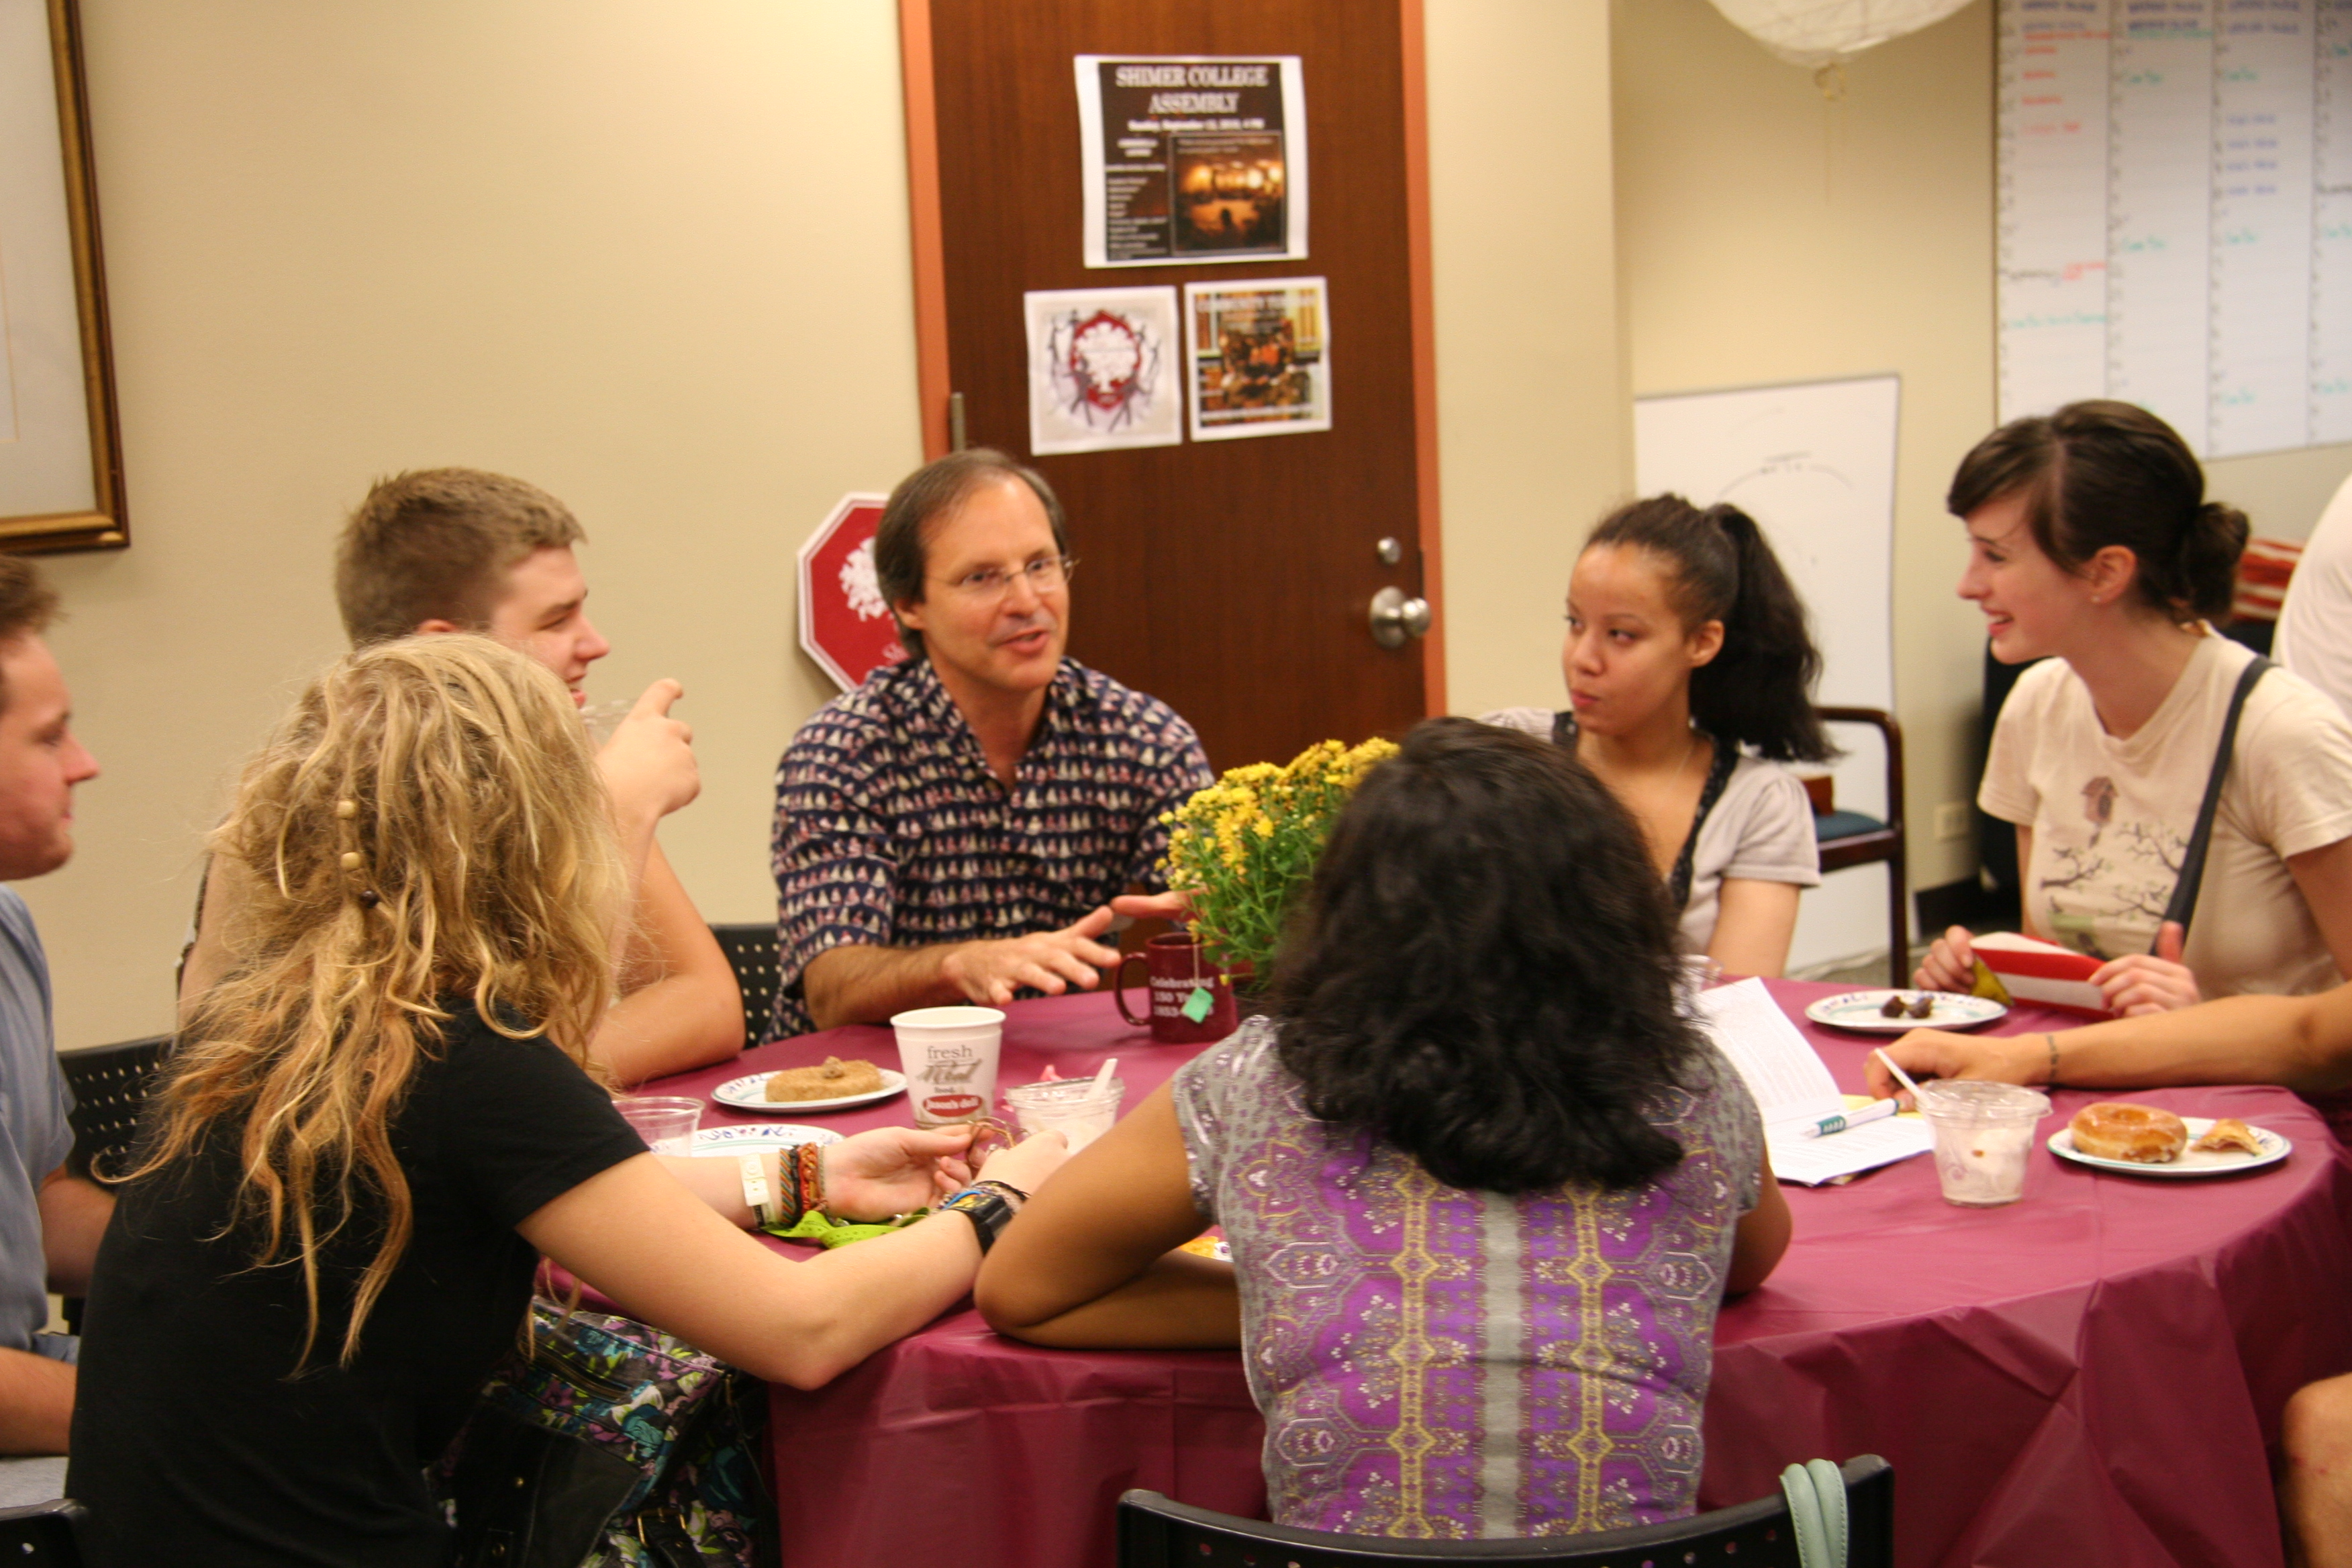 Shimer_College_conversation_with_students_2010 Home